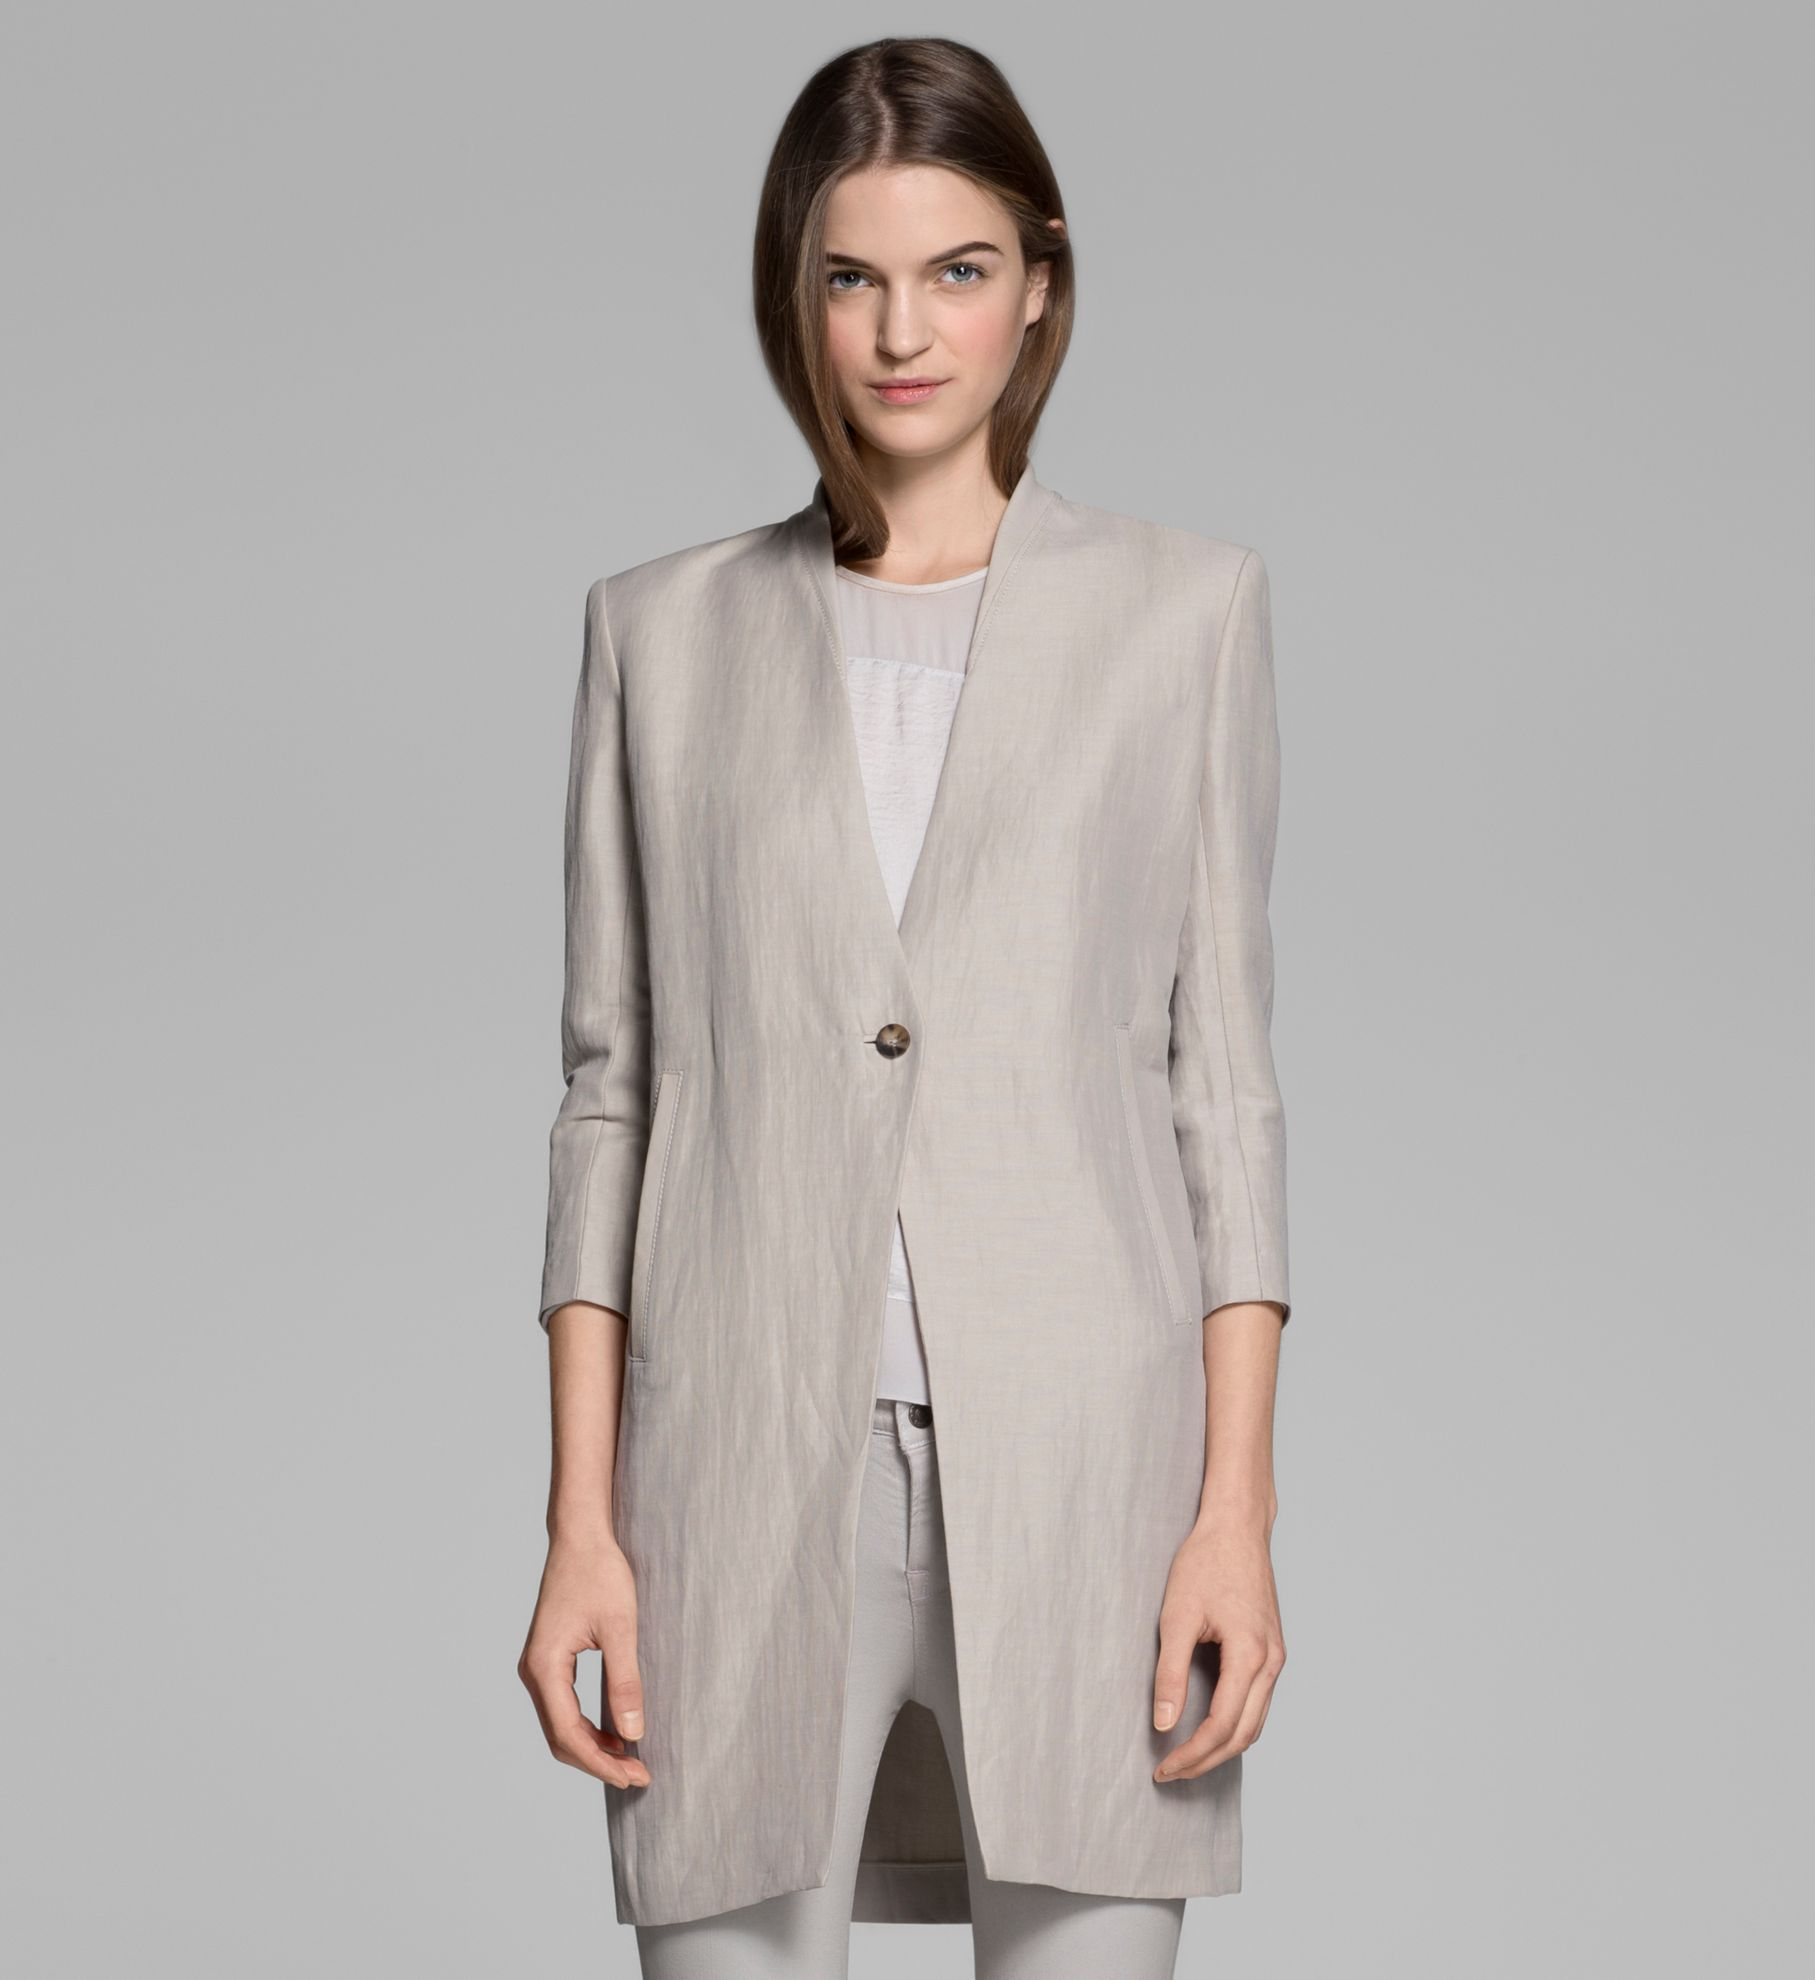 Helmut lang Matrix Linen Coat in Natural | Lyst